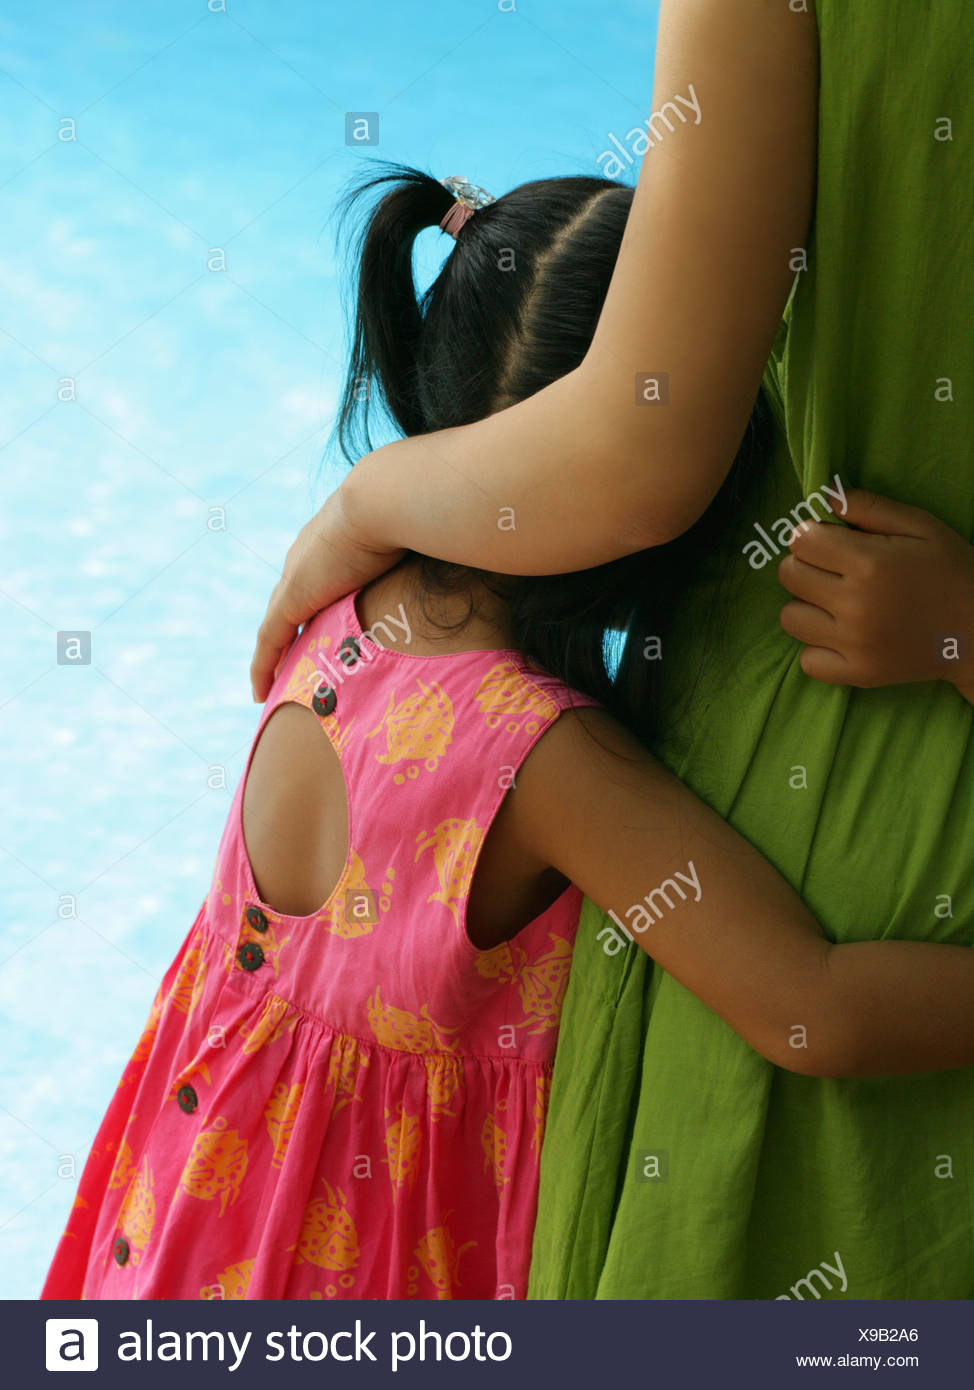 Mid section view of a woman hugging her daughter at the poolside - Stock Image